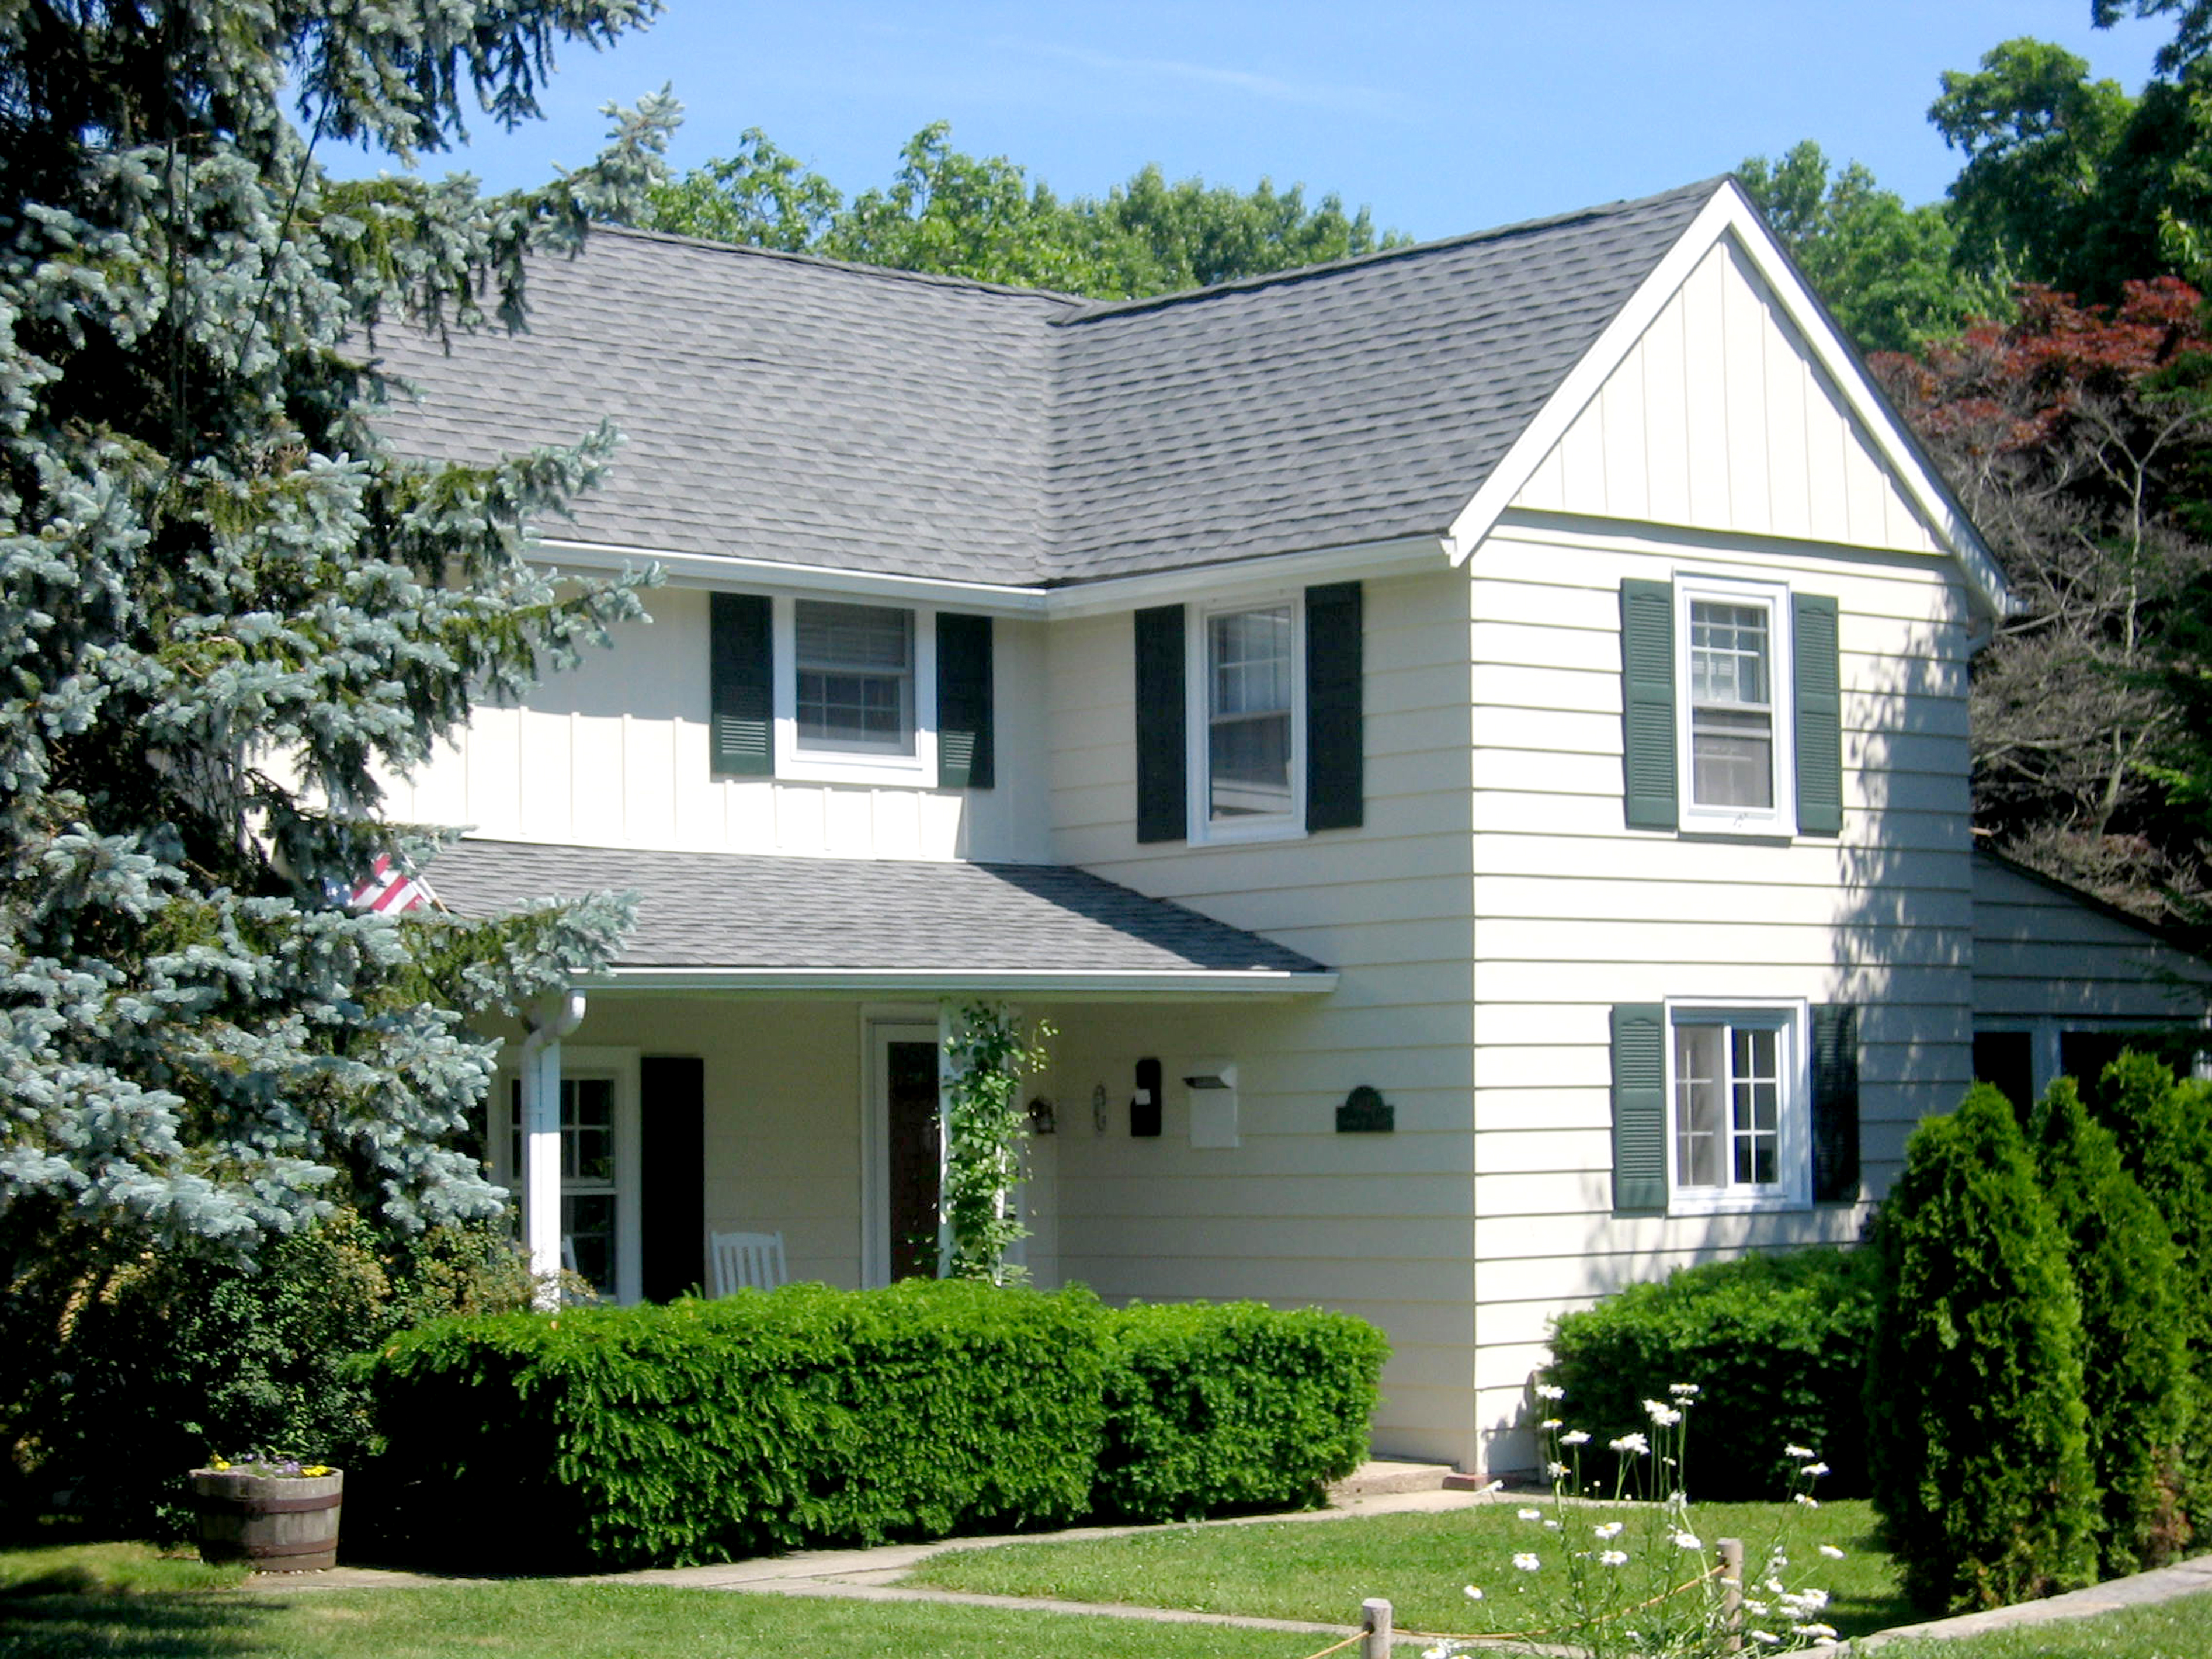 Property For Sale at Convenience Charm and Curb Appeal